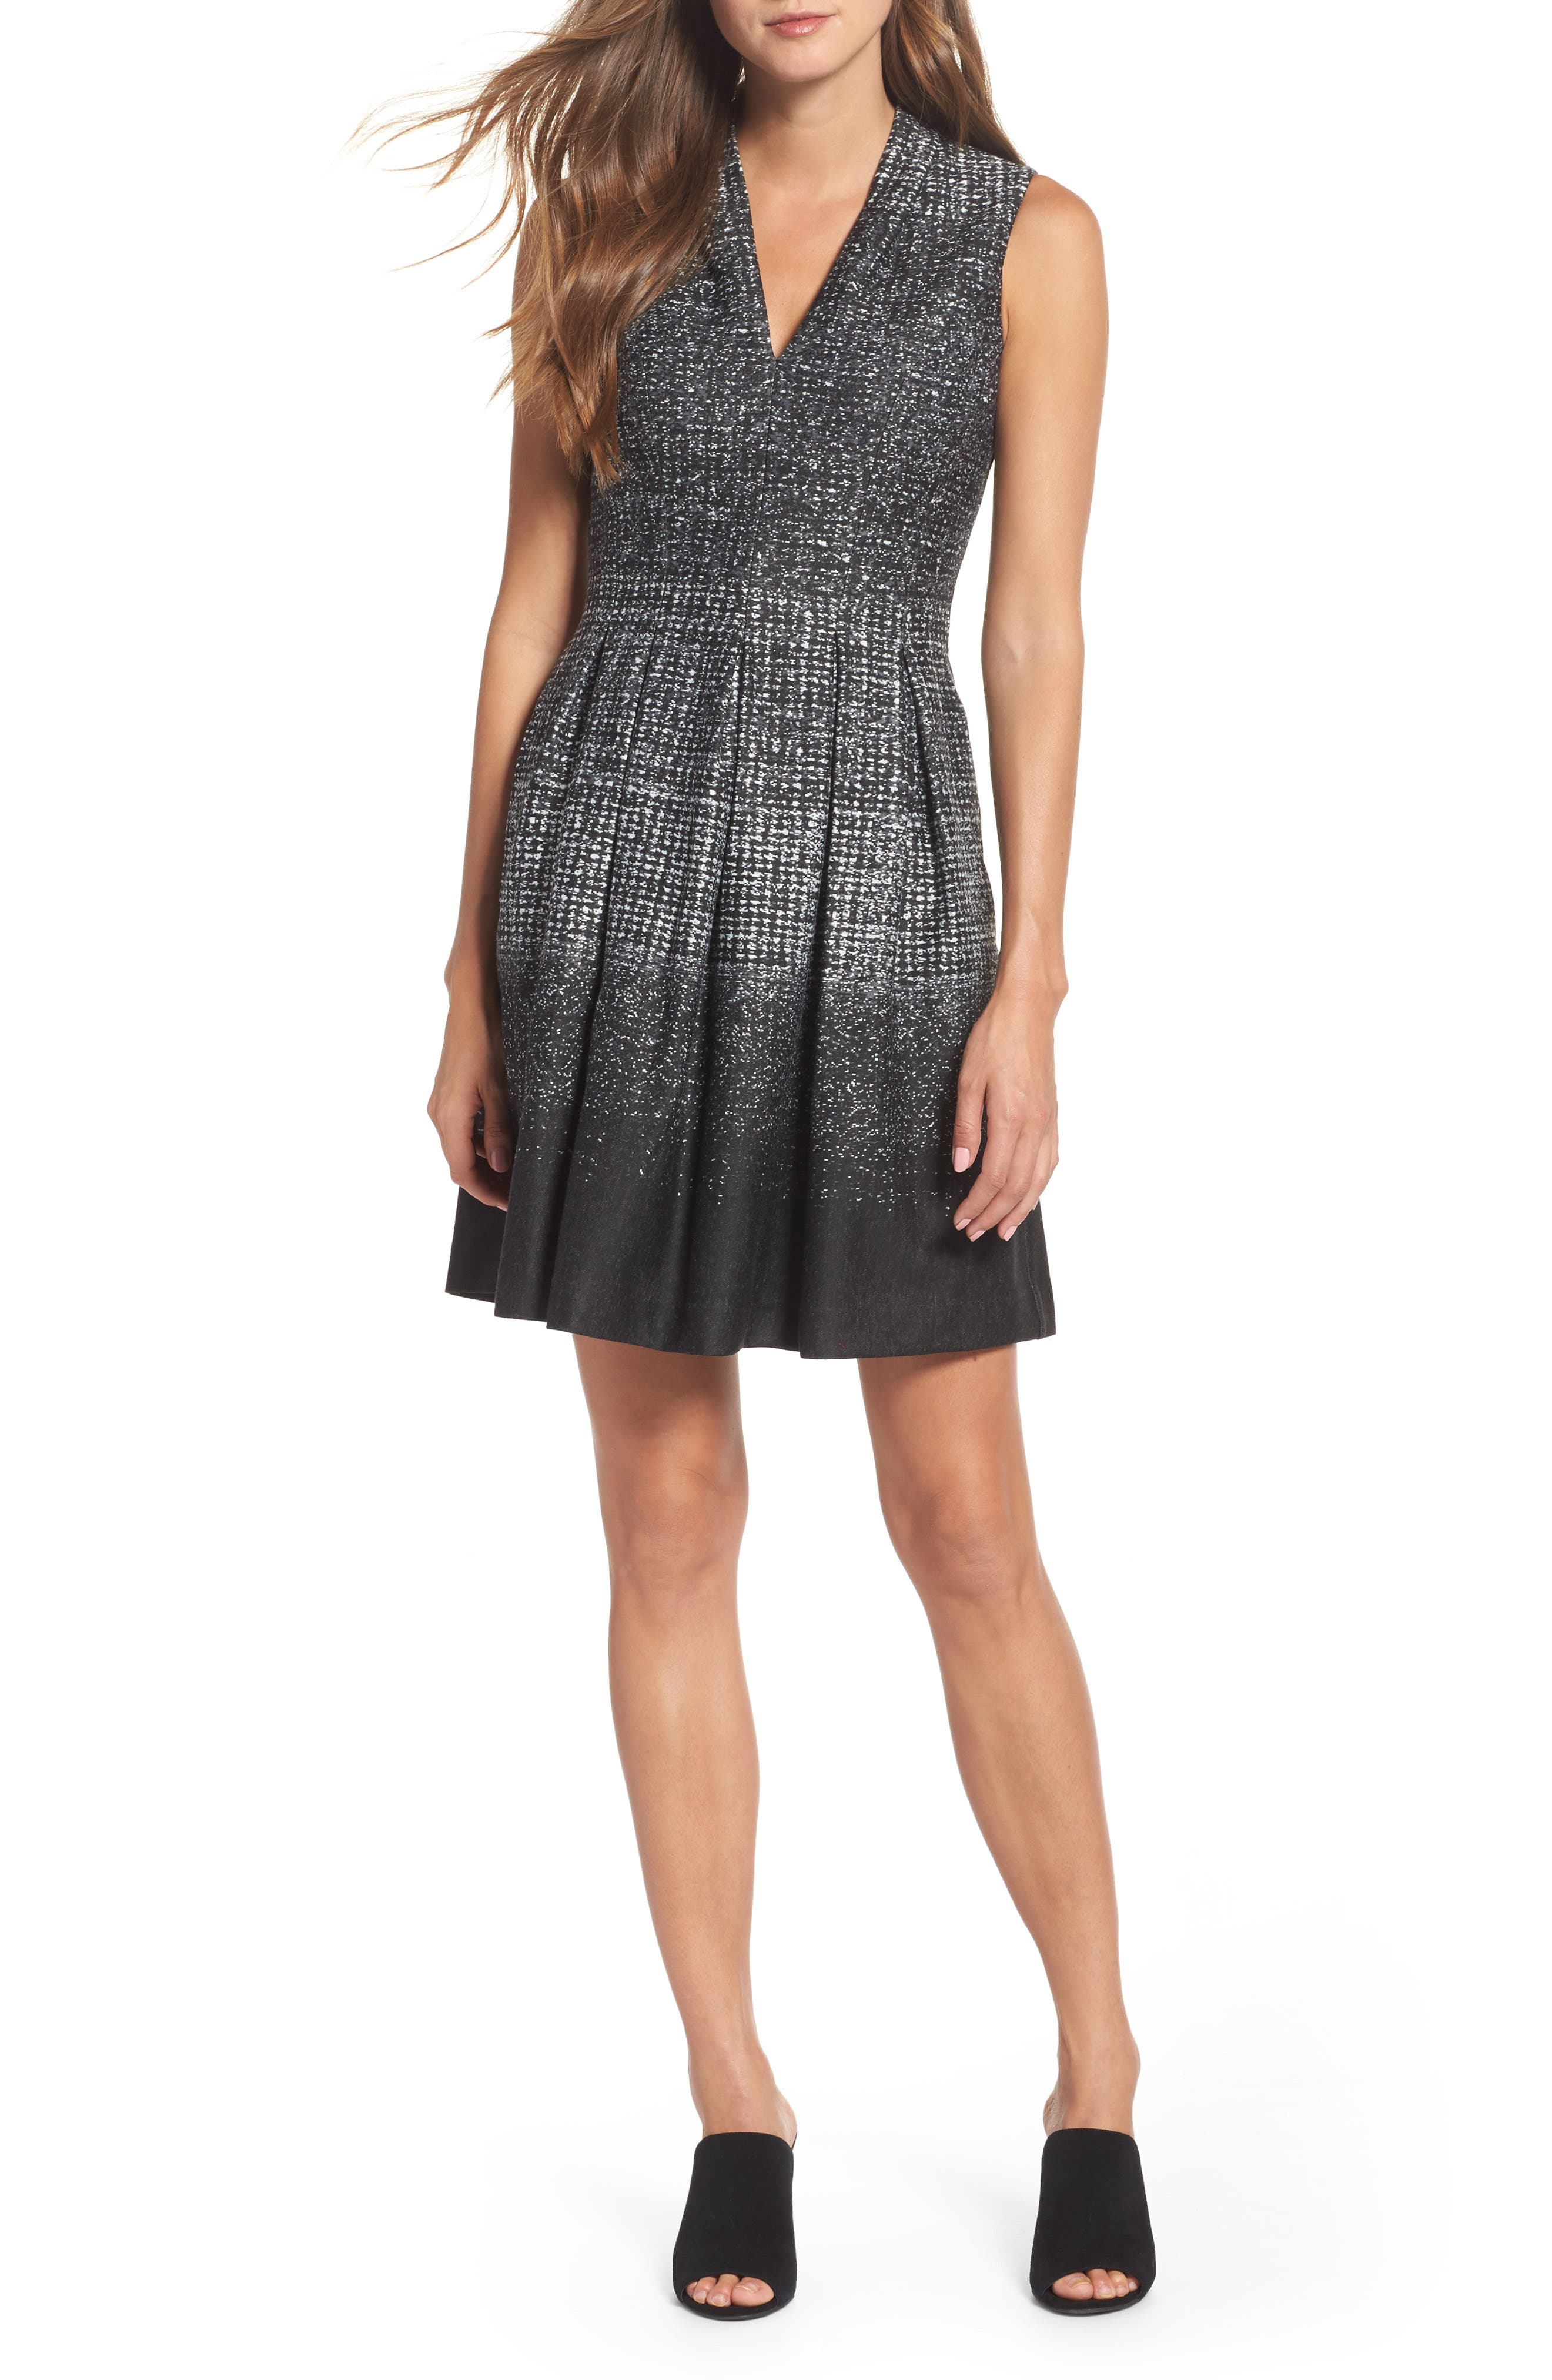 Main Image - Vince Camuto Sleeveless Fit & Flare Dress (Regular & Petite)